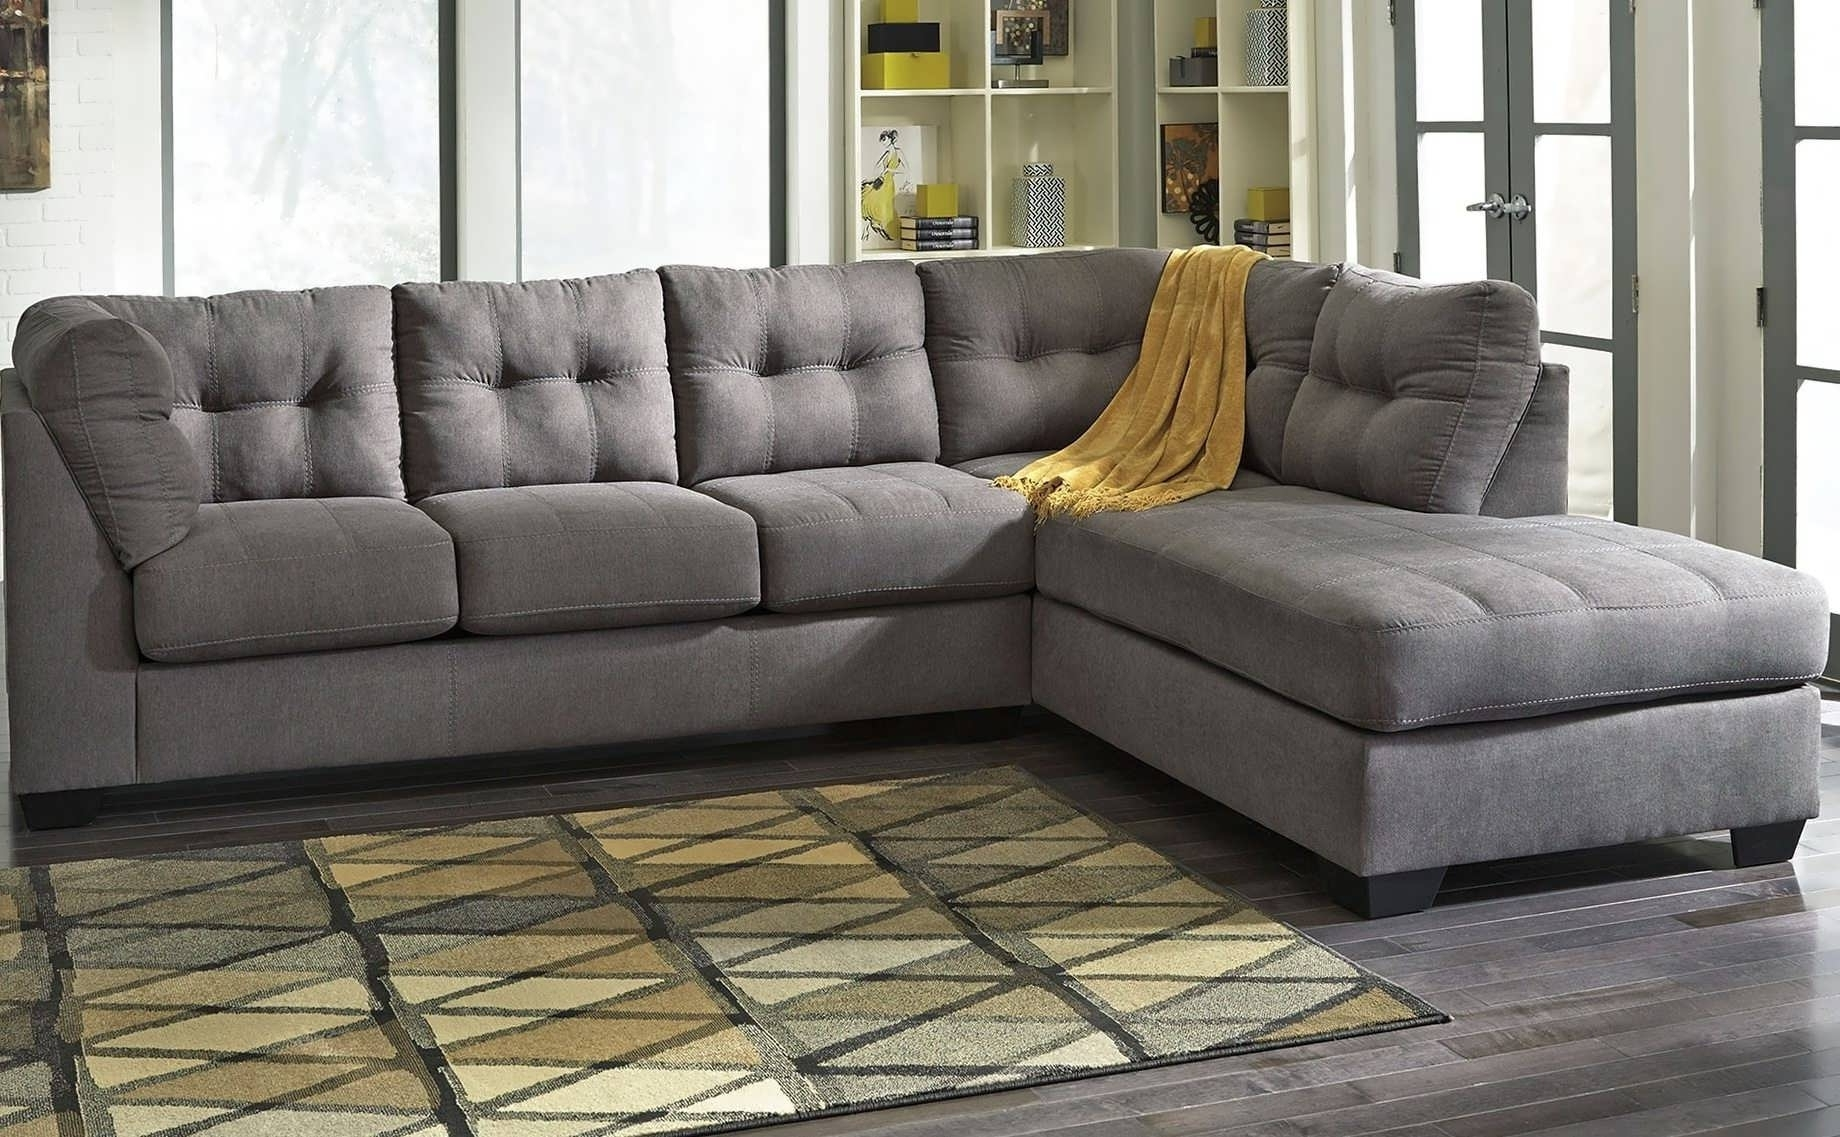 2018 Sofa : Grey Sectional With Chaise Oversized Sectional Sofa White With Grey Couches With Chaise (View 1 of 15)